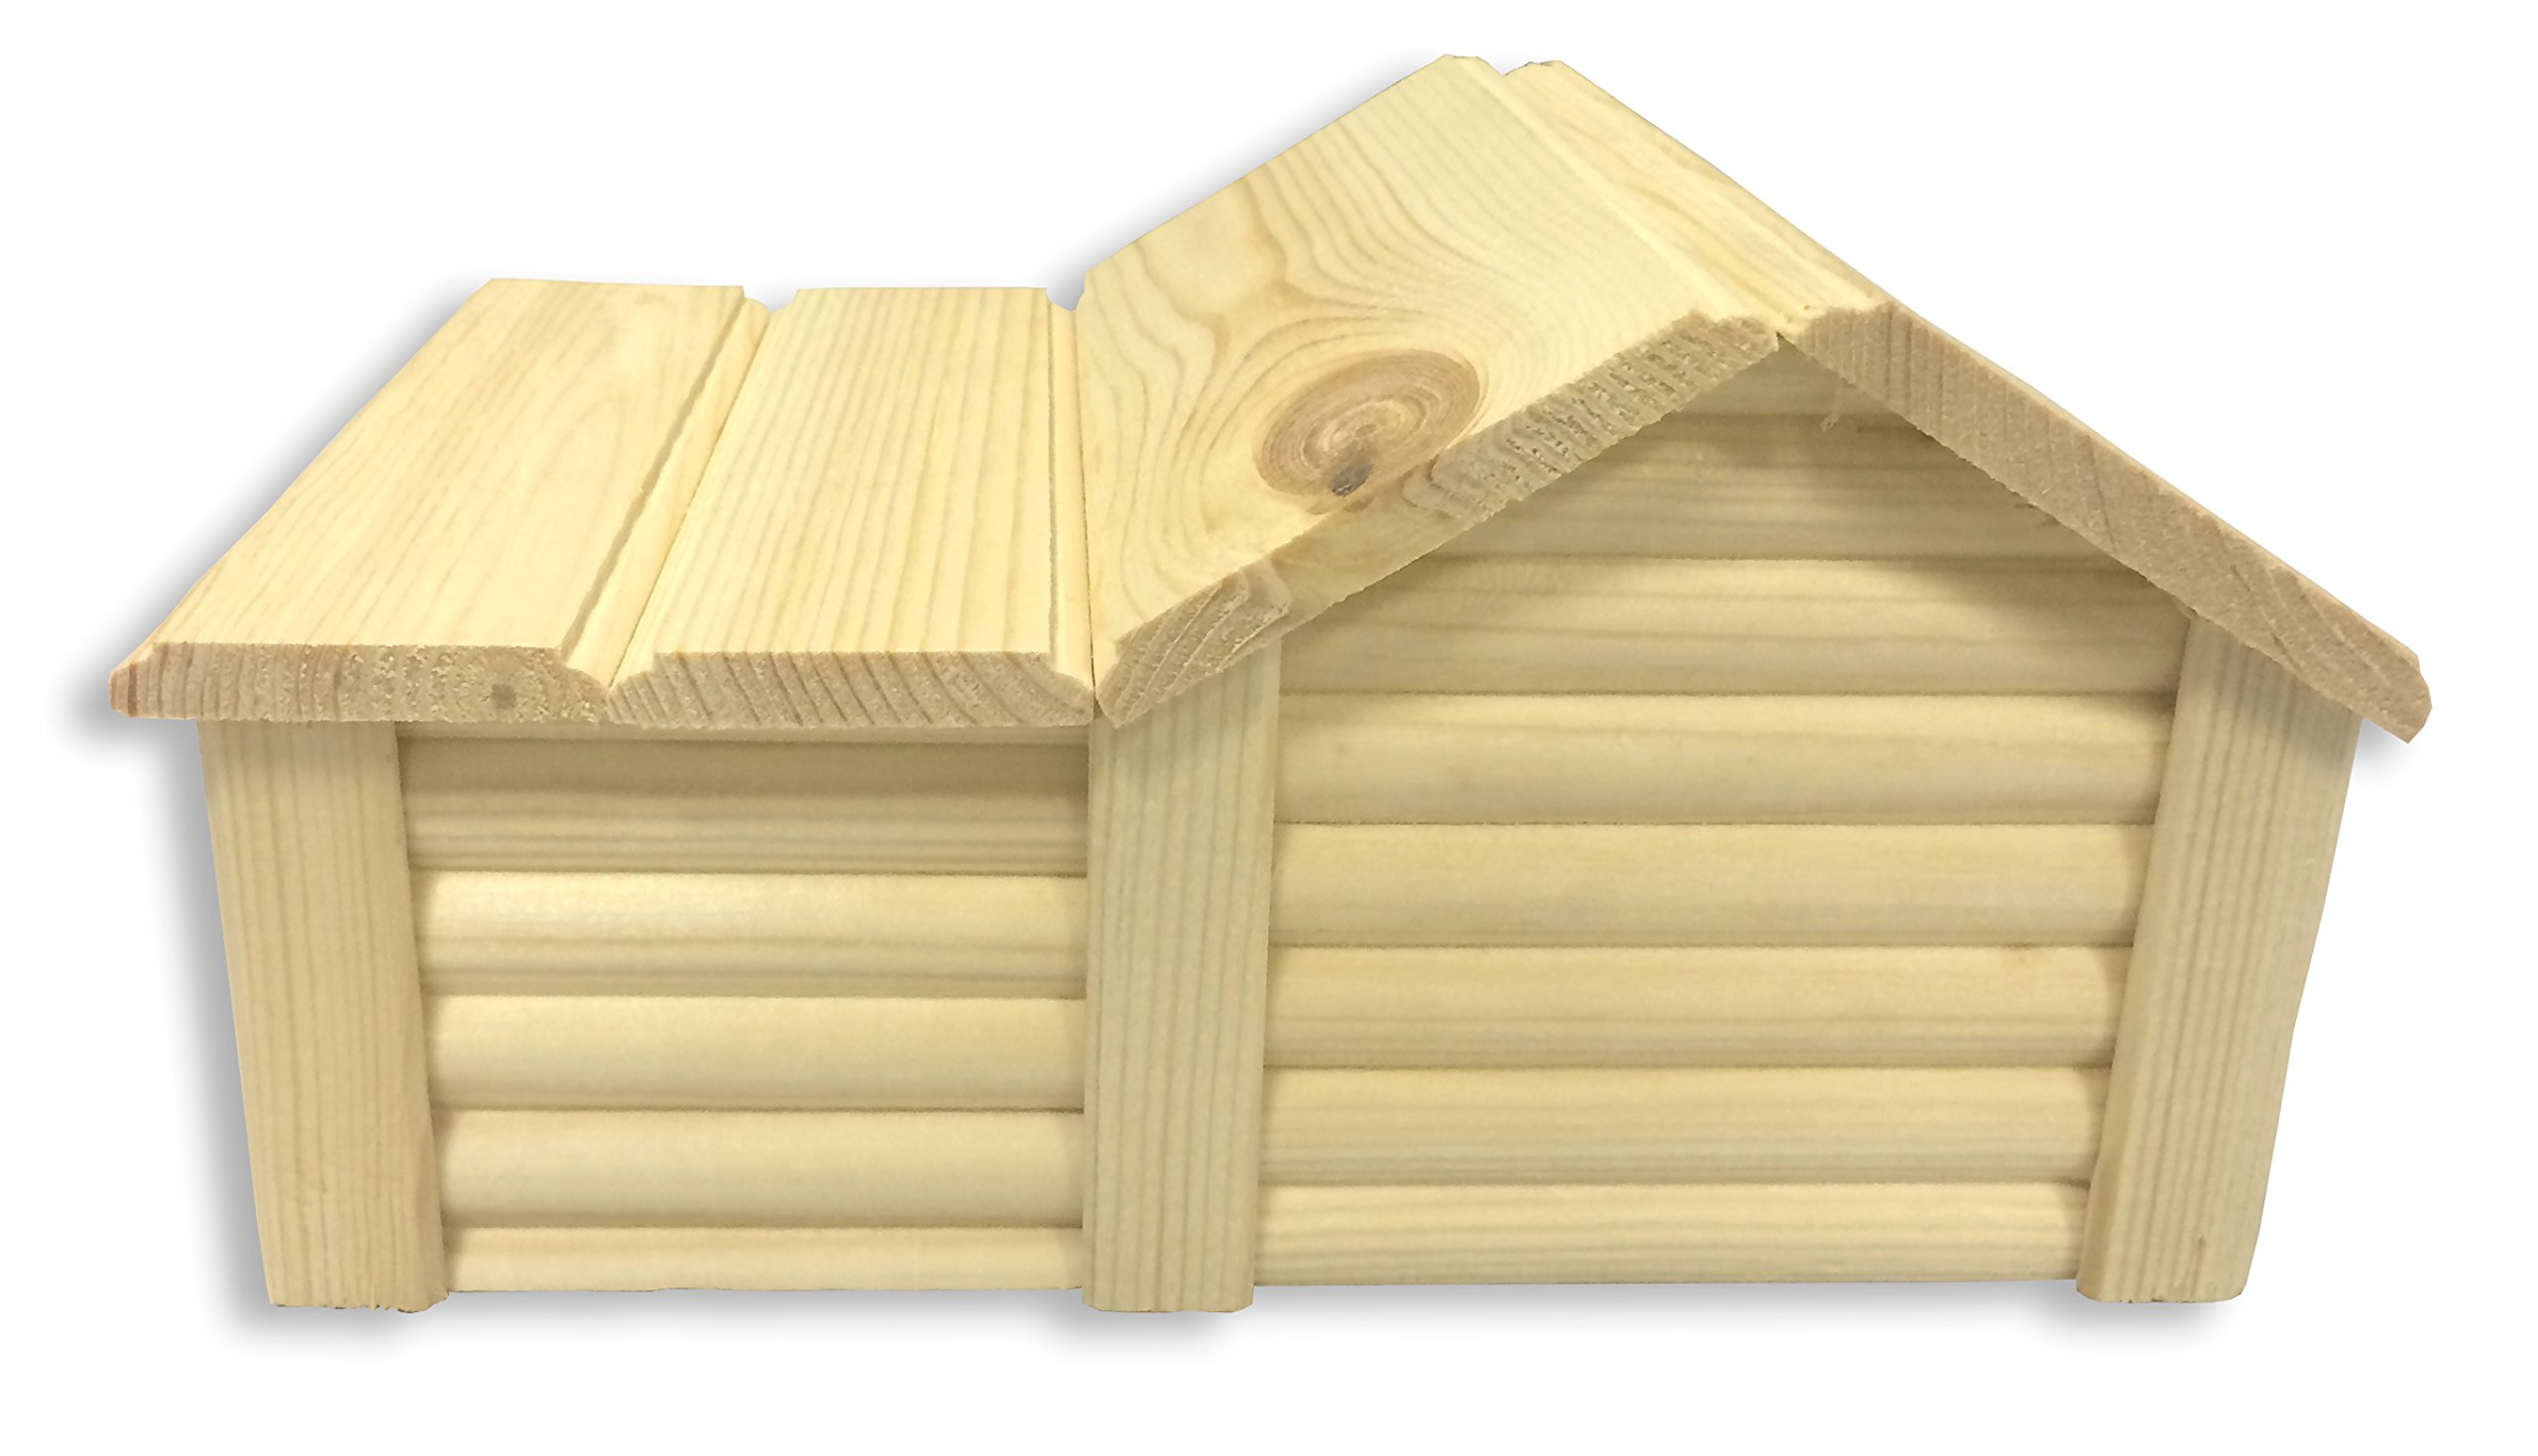 Green Farm Small Animal House with Annex for Hamsters and Mice by Green Farm (Image #5)